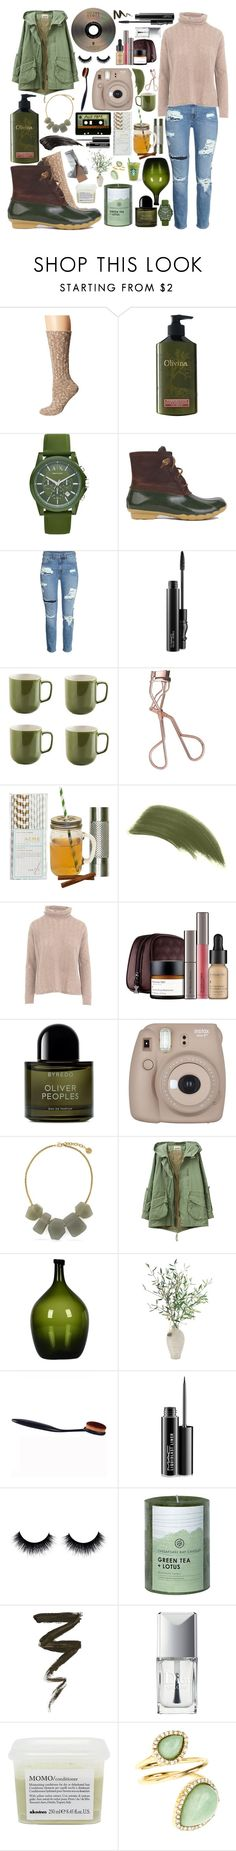 """Olive and burnt toffee, wilderness look"" by annalaris on Polyvore featuring Lauren Ralph Lauren, Olivina, Armani Exchange, Sperry, MAC Cosmetics, Price & Kensington, Charlotte Tilbury, ACME Party Box Company, By Terry and Quinn"